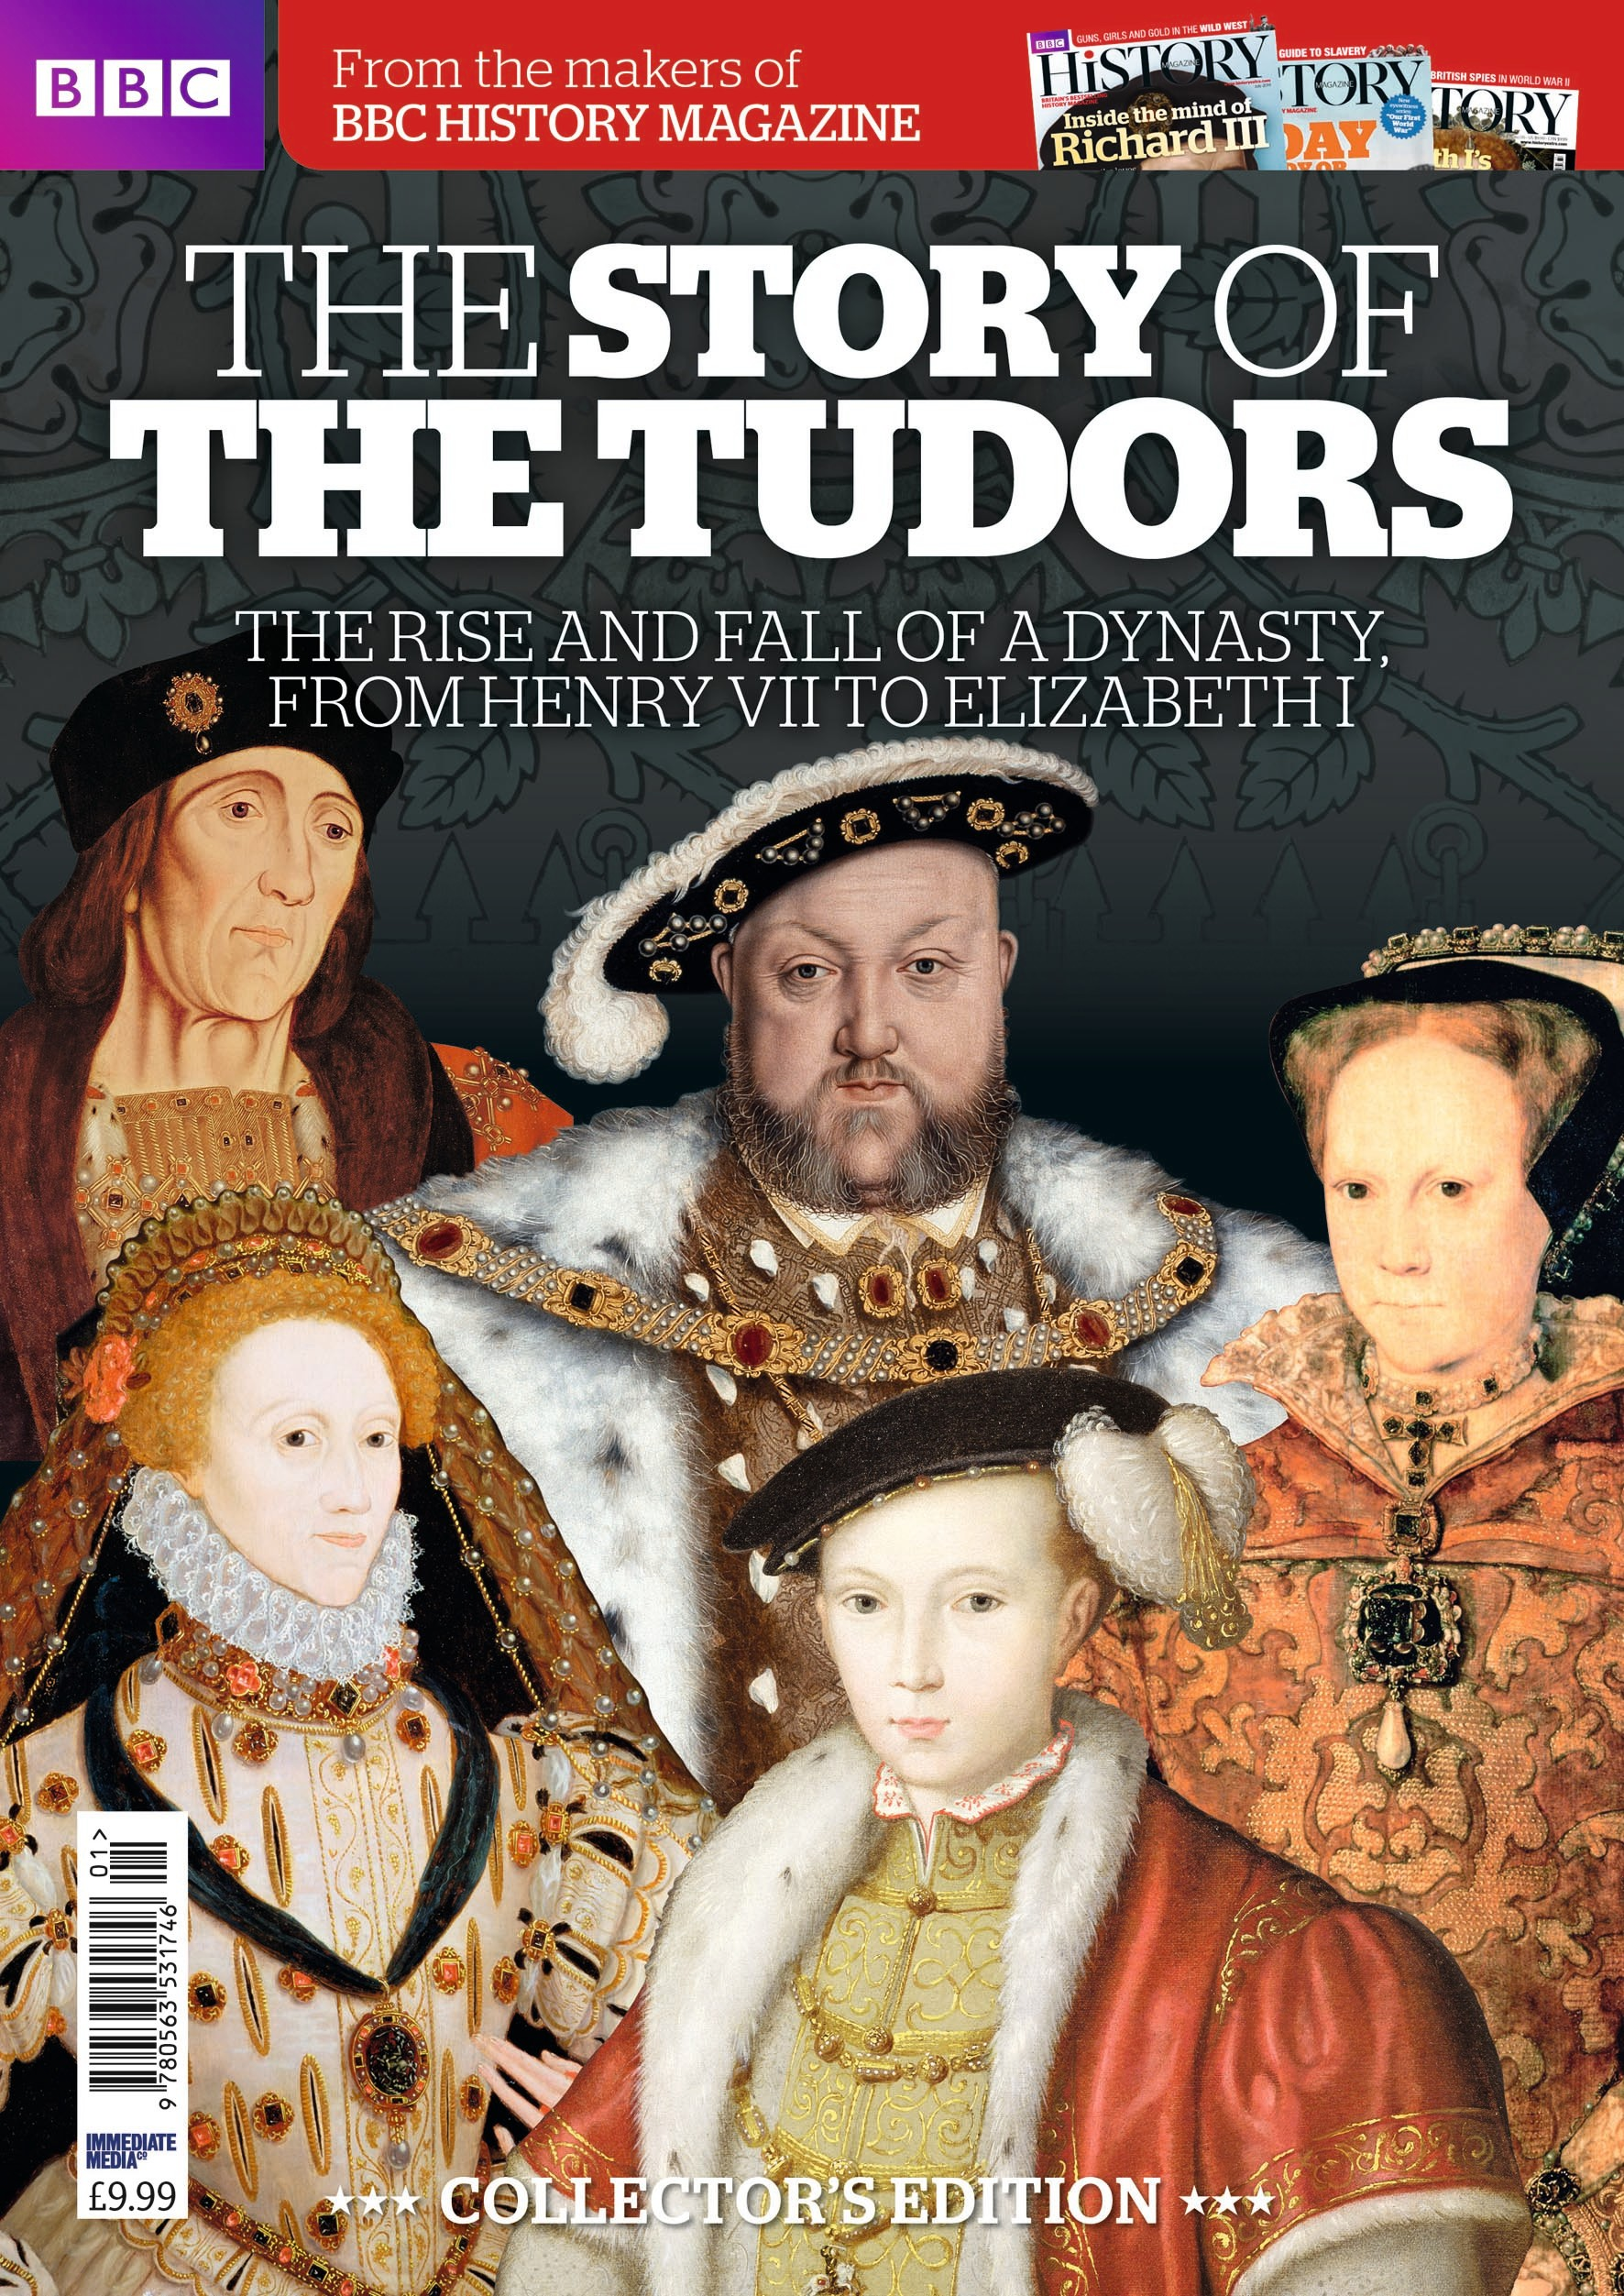 The Story of the Tudors.